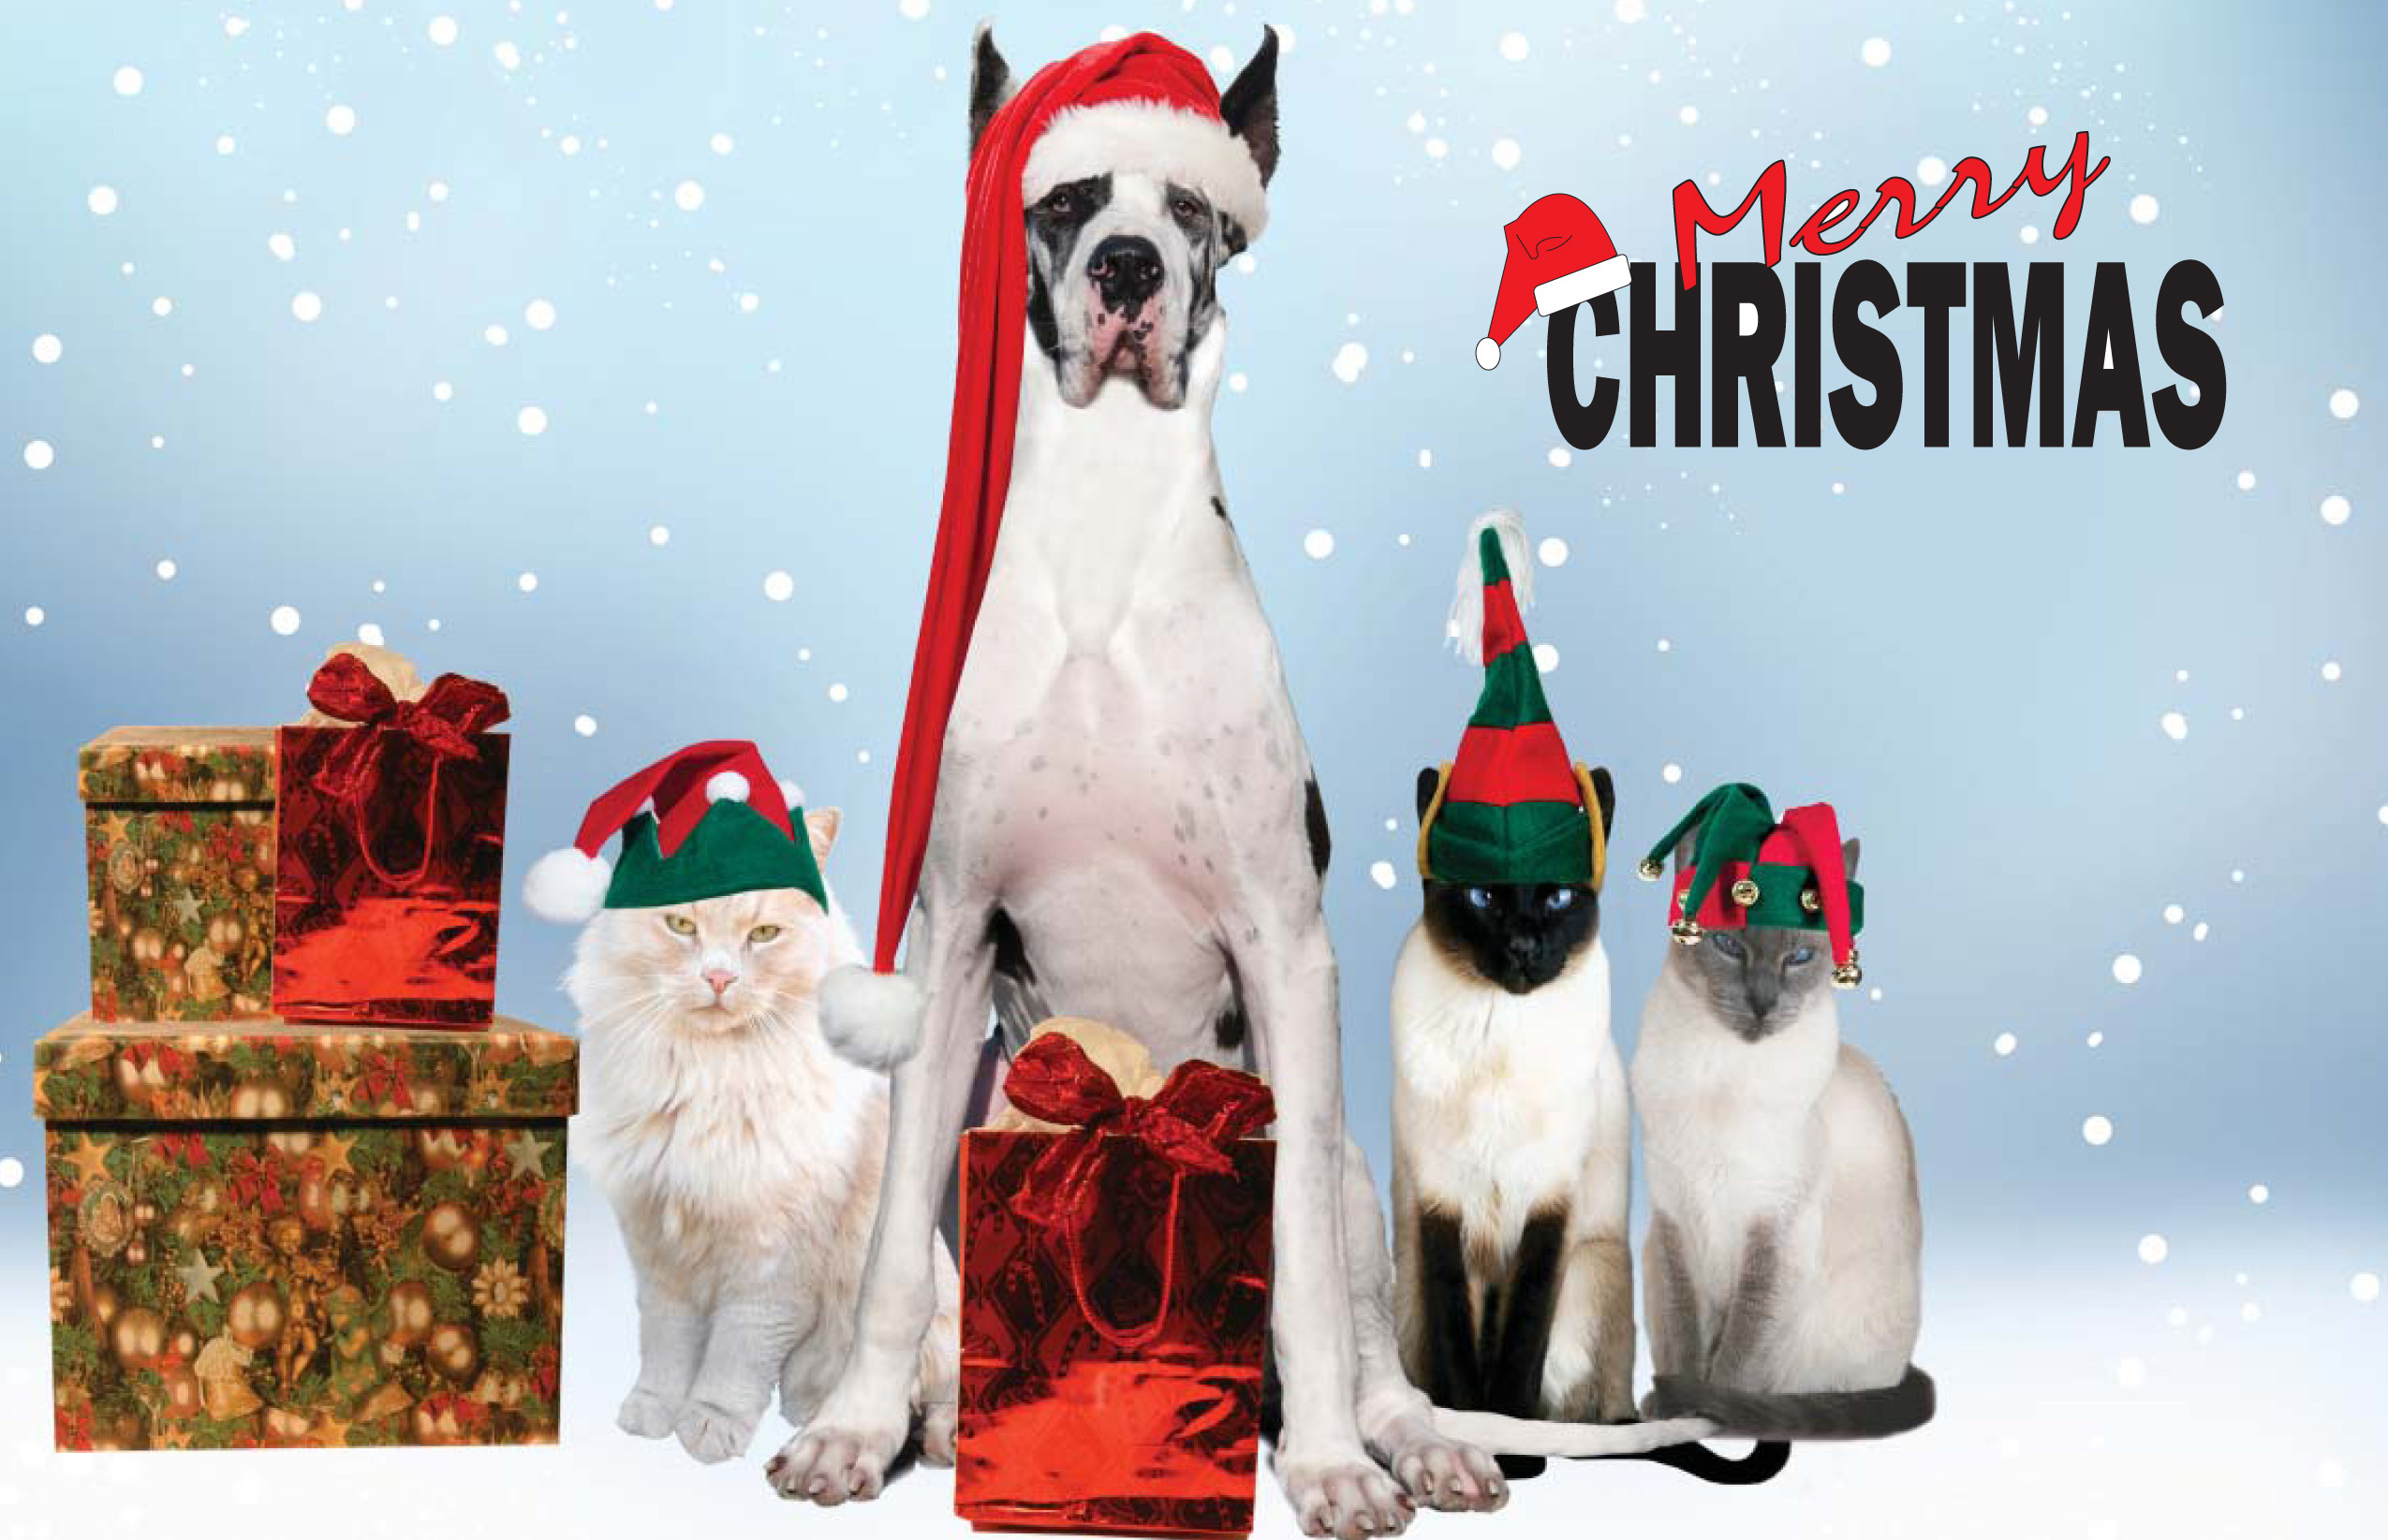 Merry Christmas Animals.Merry Christmas From Paw Of Us Hd Wallpaper Background Image